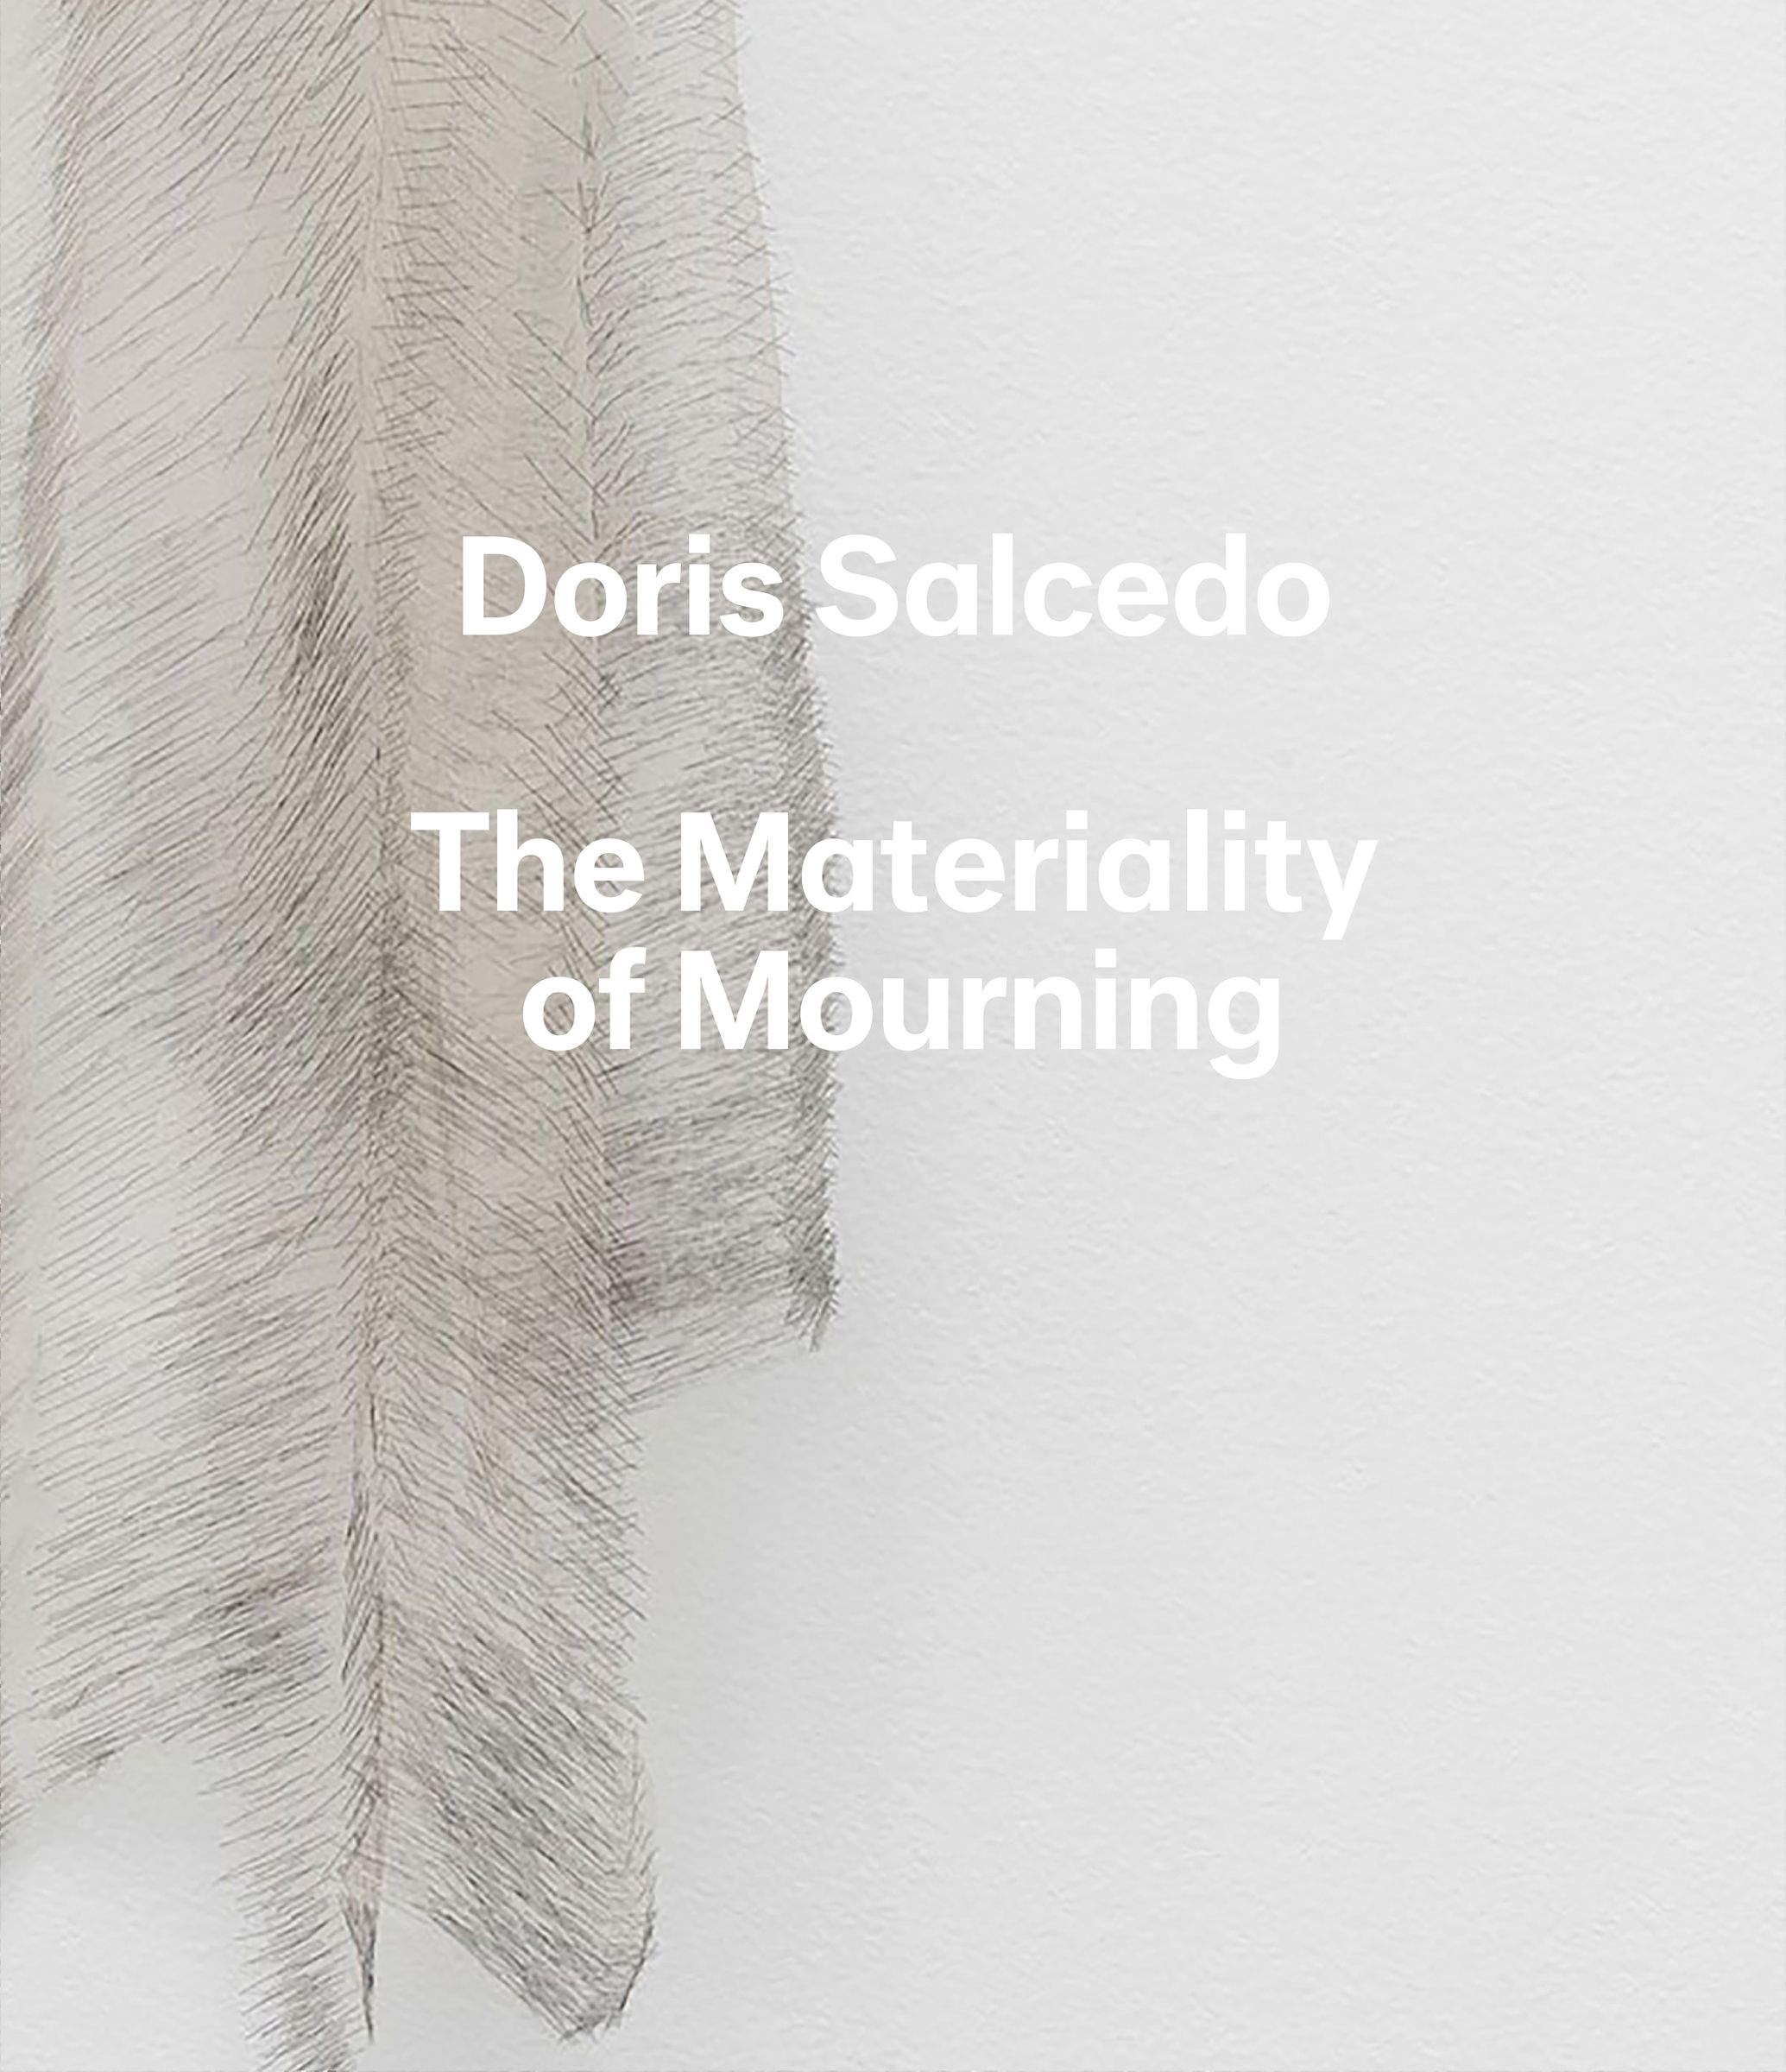 Doris Salcedo: The Materiality of Mourning